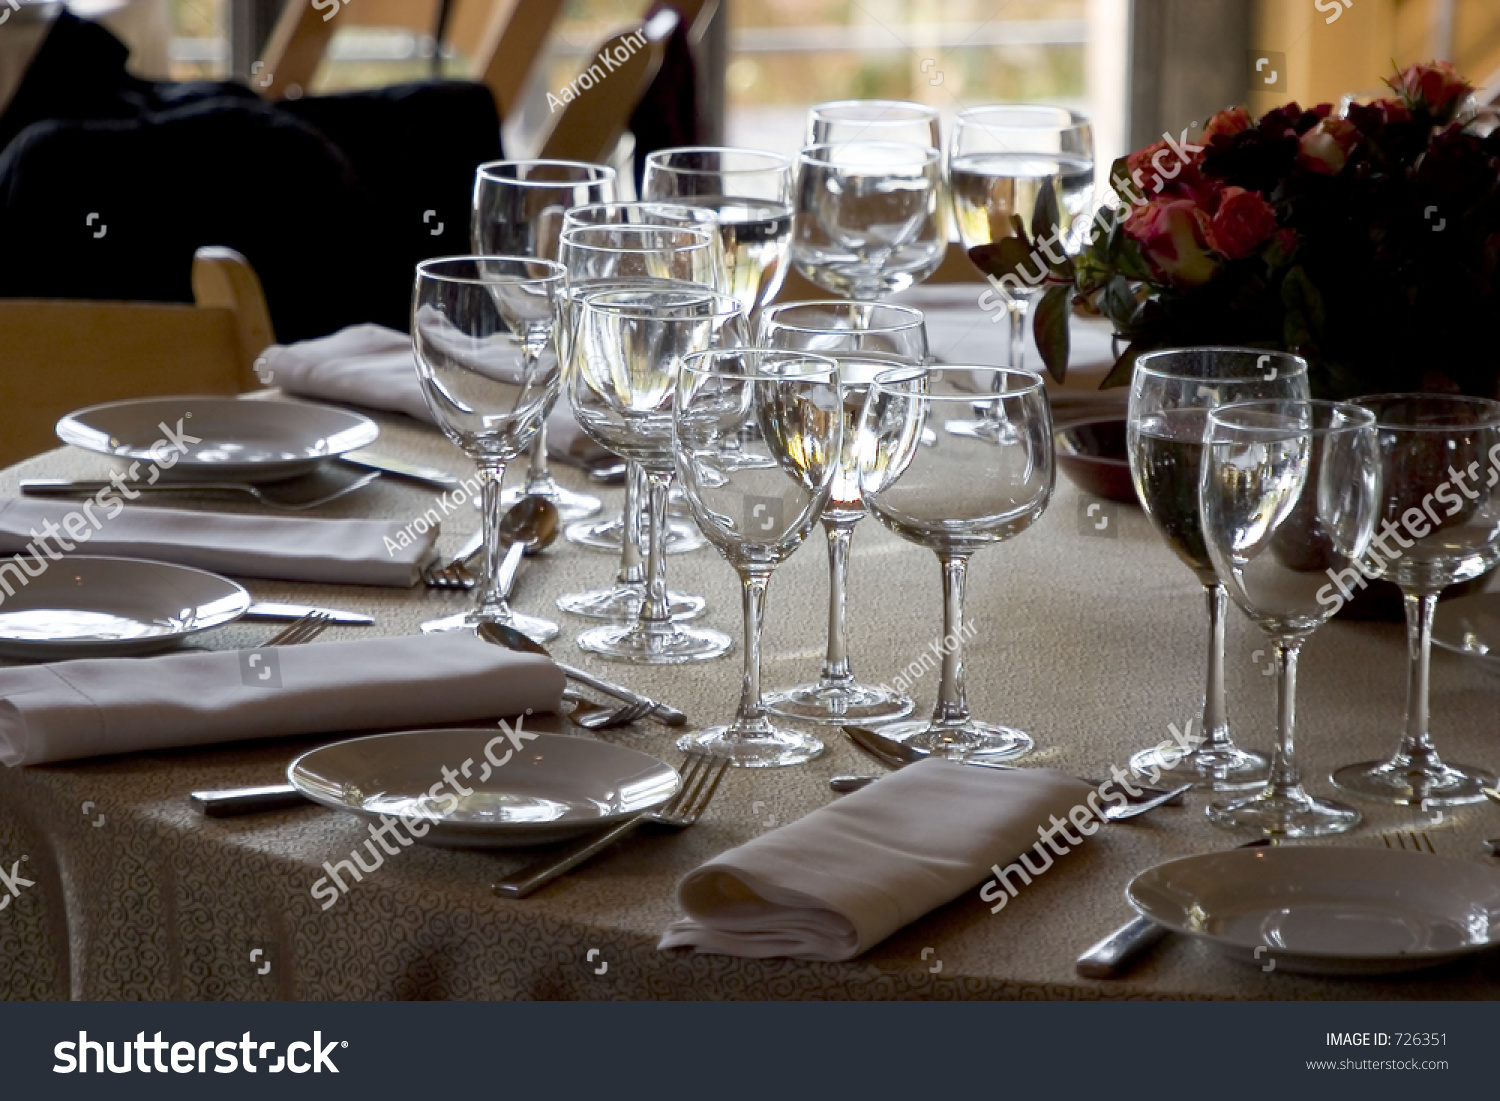 A fancy table setting awaits the guests. Focus is on the forground plate and glasses : fancy table setting - pezcame.com